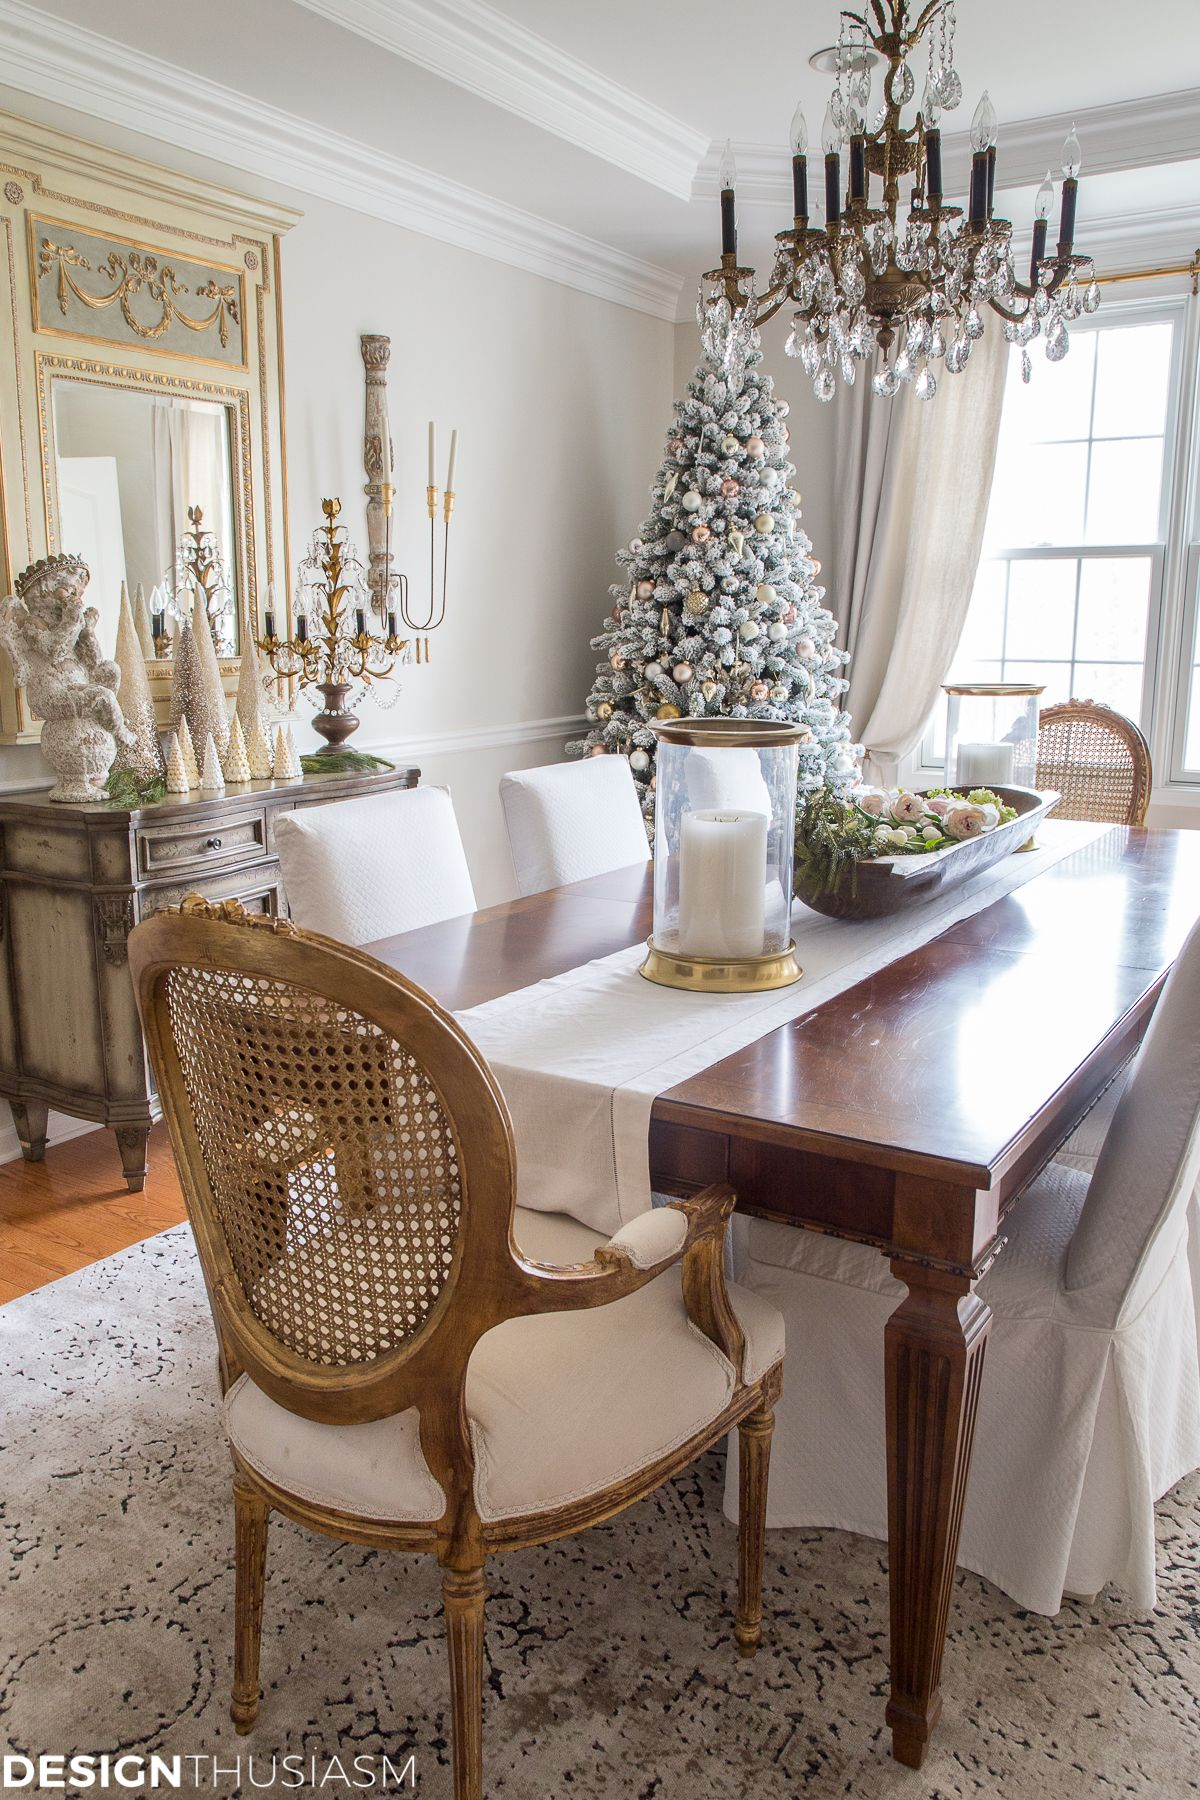 Design Ideas For Dining Room: Elegant Holiday Decorating Ideas For The Dining Room